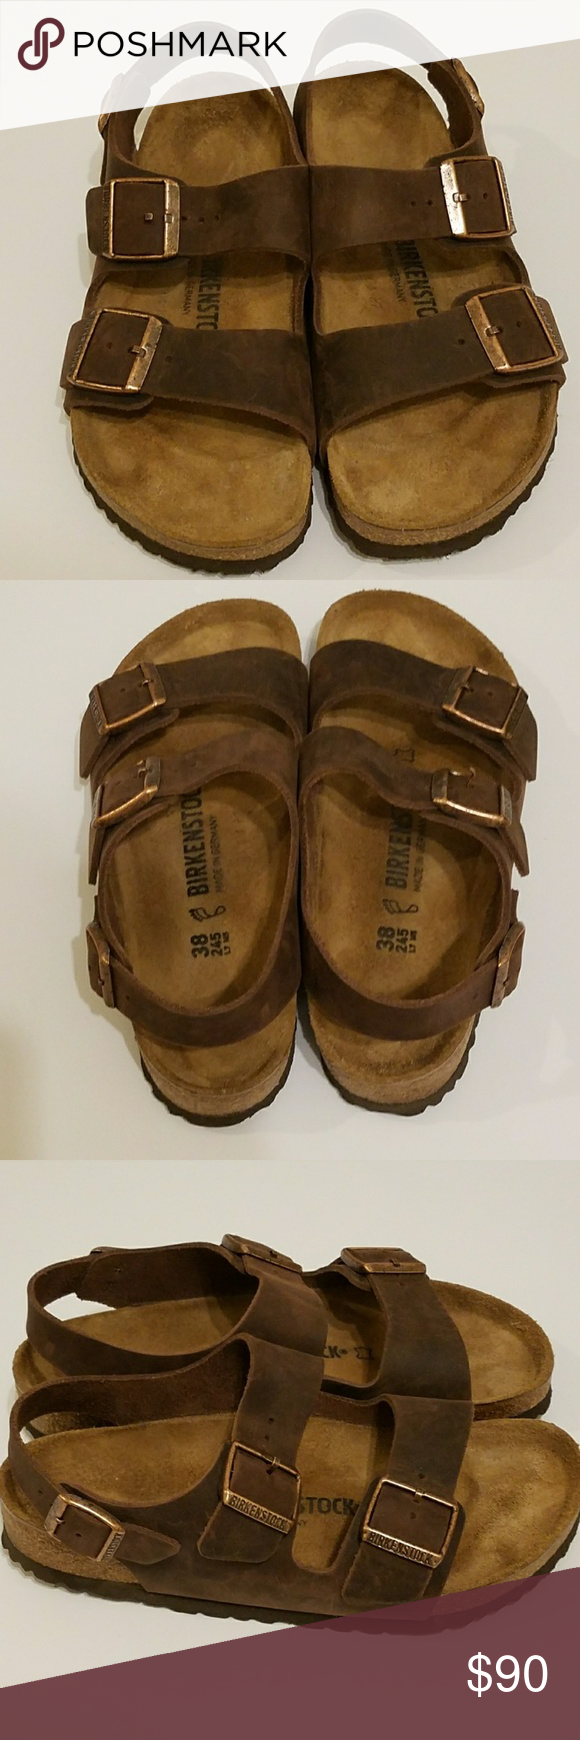 590bfe692bd0 Like New Birkenstock Milano Leather Sandals 38 Like New Birkenstock Milano  Slingback Habana Brown Oiled Leather Sandals. Size 38. Birkenstock Shoes  Sandals